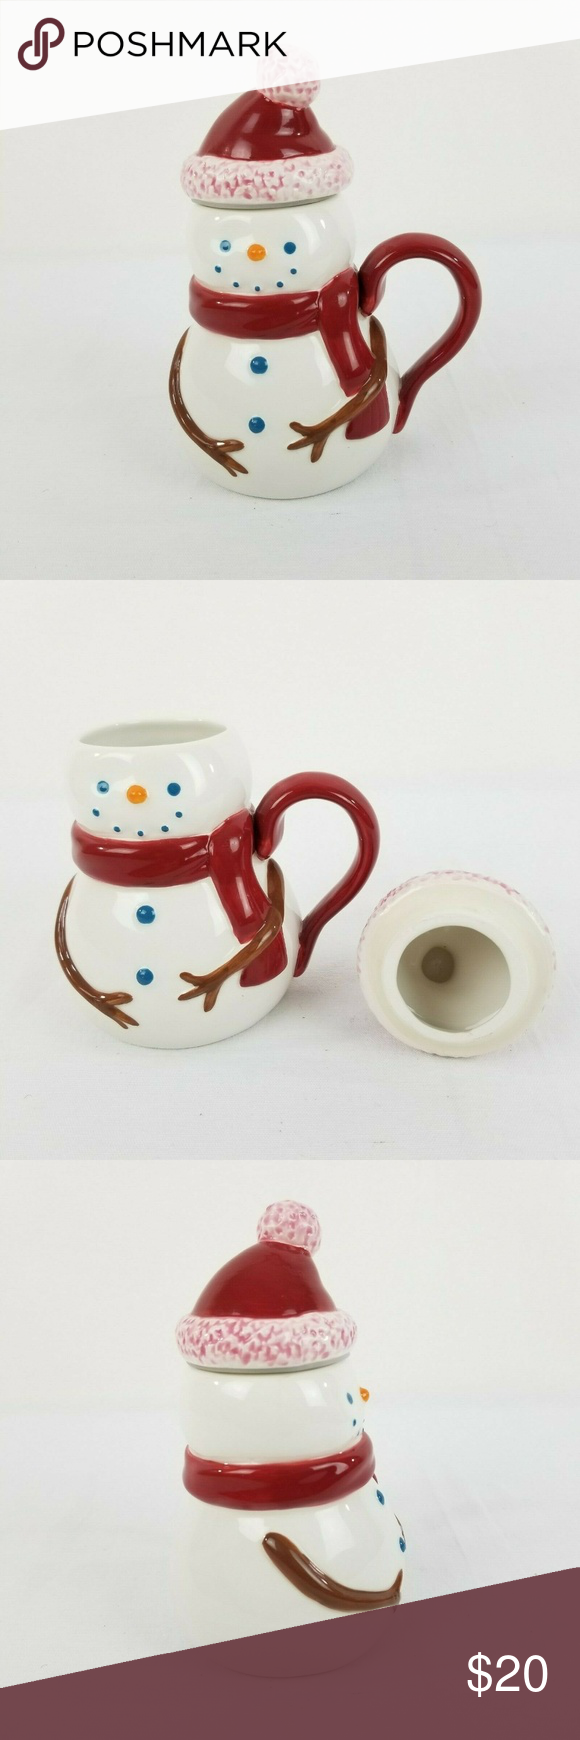 Collectibles Starbucks Snowman Mug with Lid 2006 Features